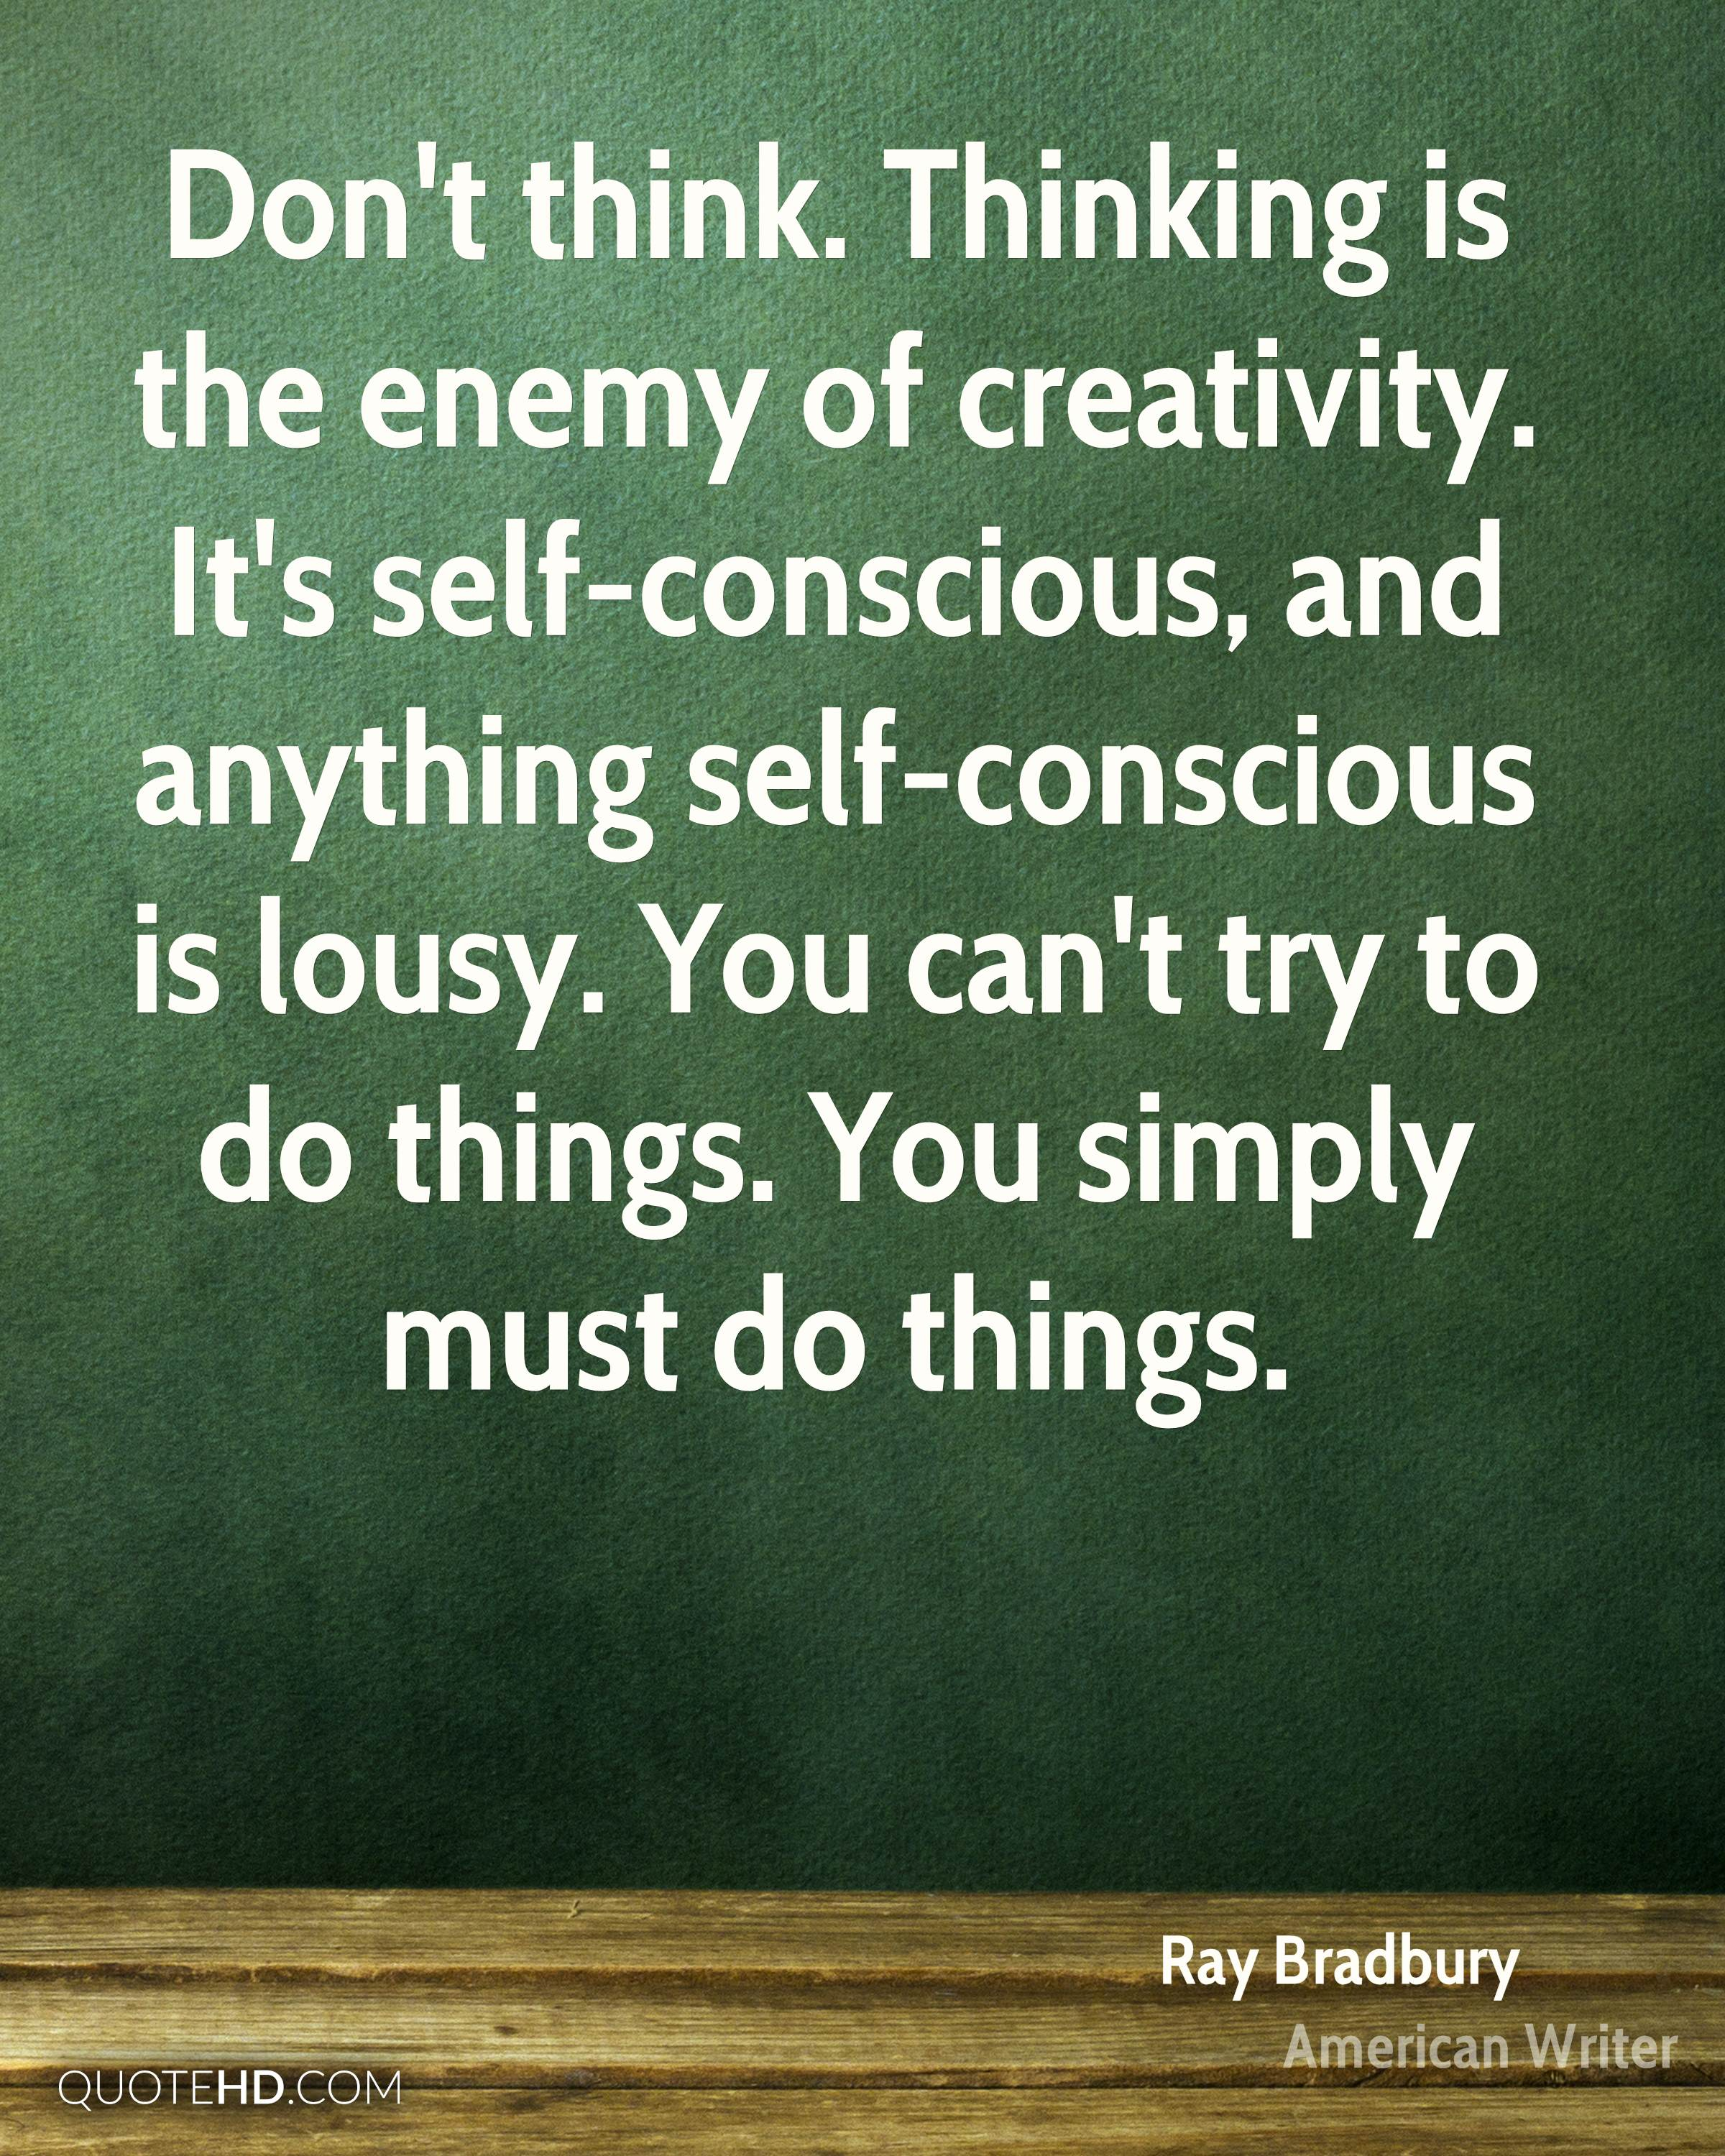 Don't think. Thinking is the enemy of creativity. It's self-conscious, and anything self-conscious is lousy. You can't try to do things. You simply must do things.